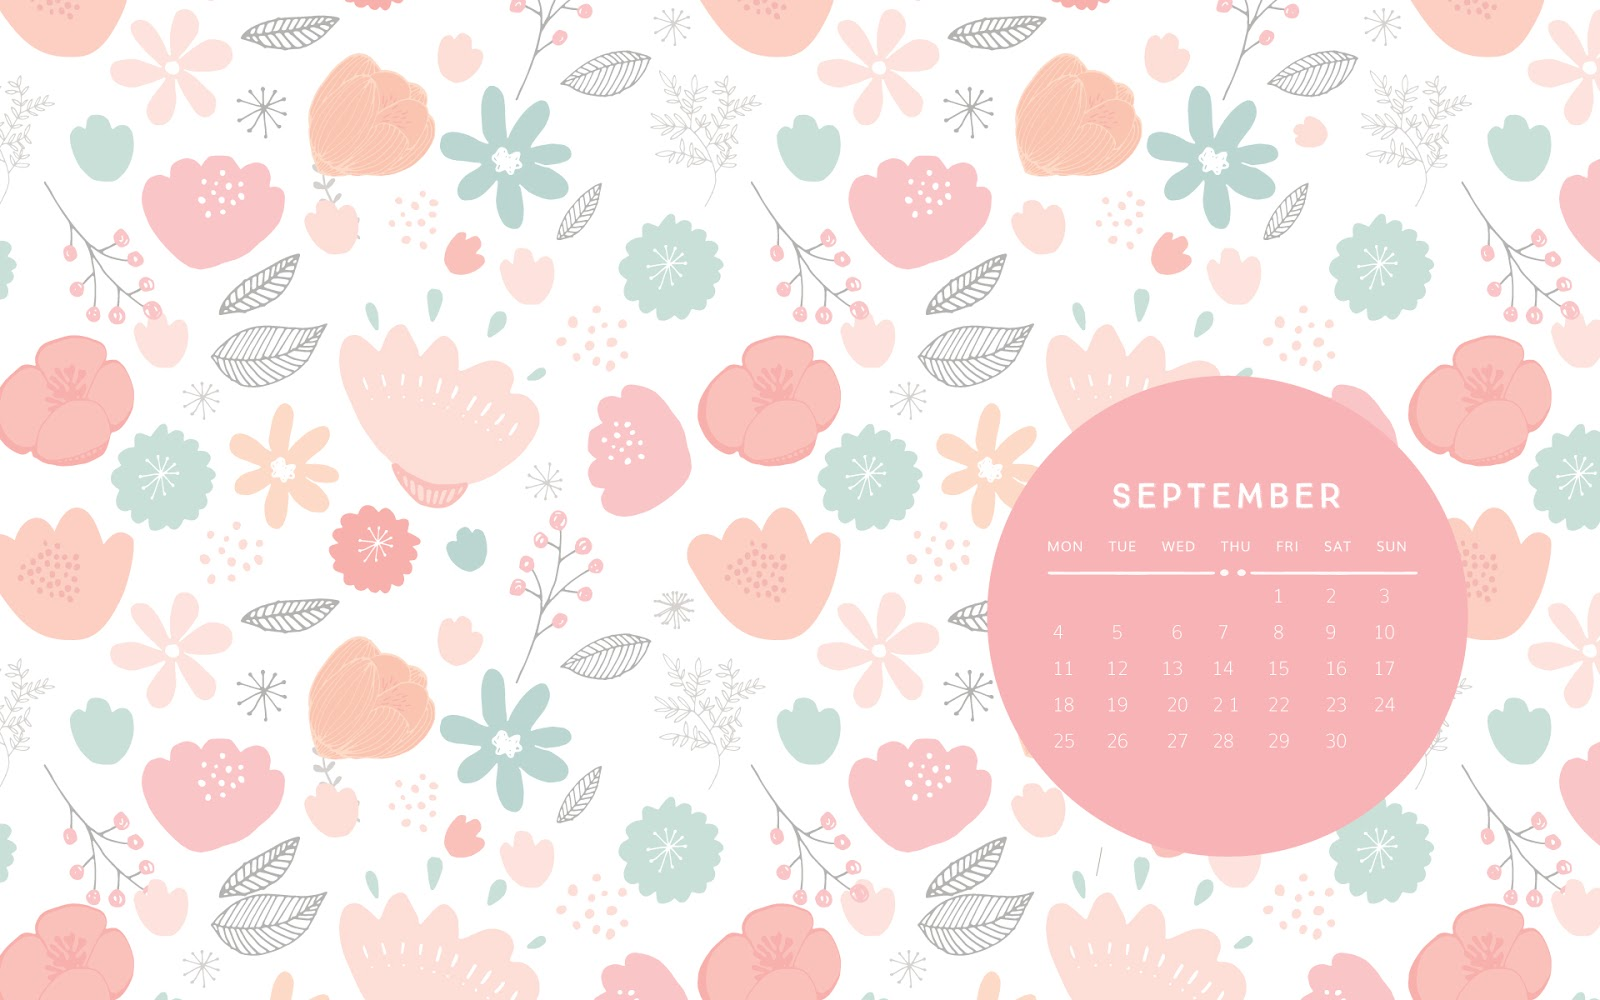 Calendar Wallpaper Love Mae : New desktop calendar for september love mae